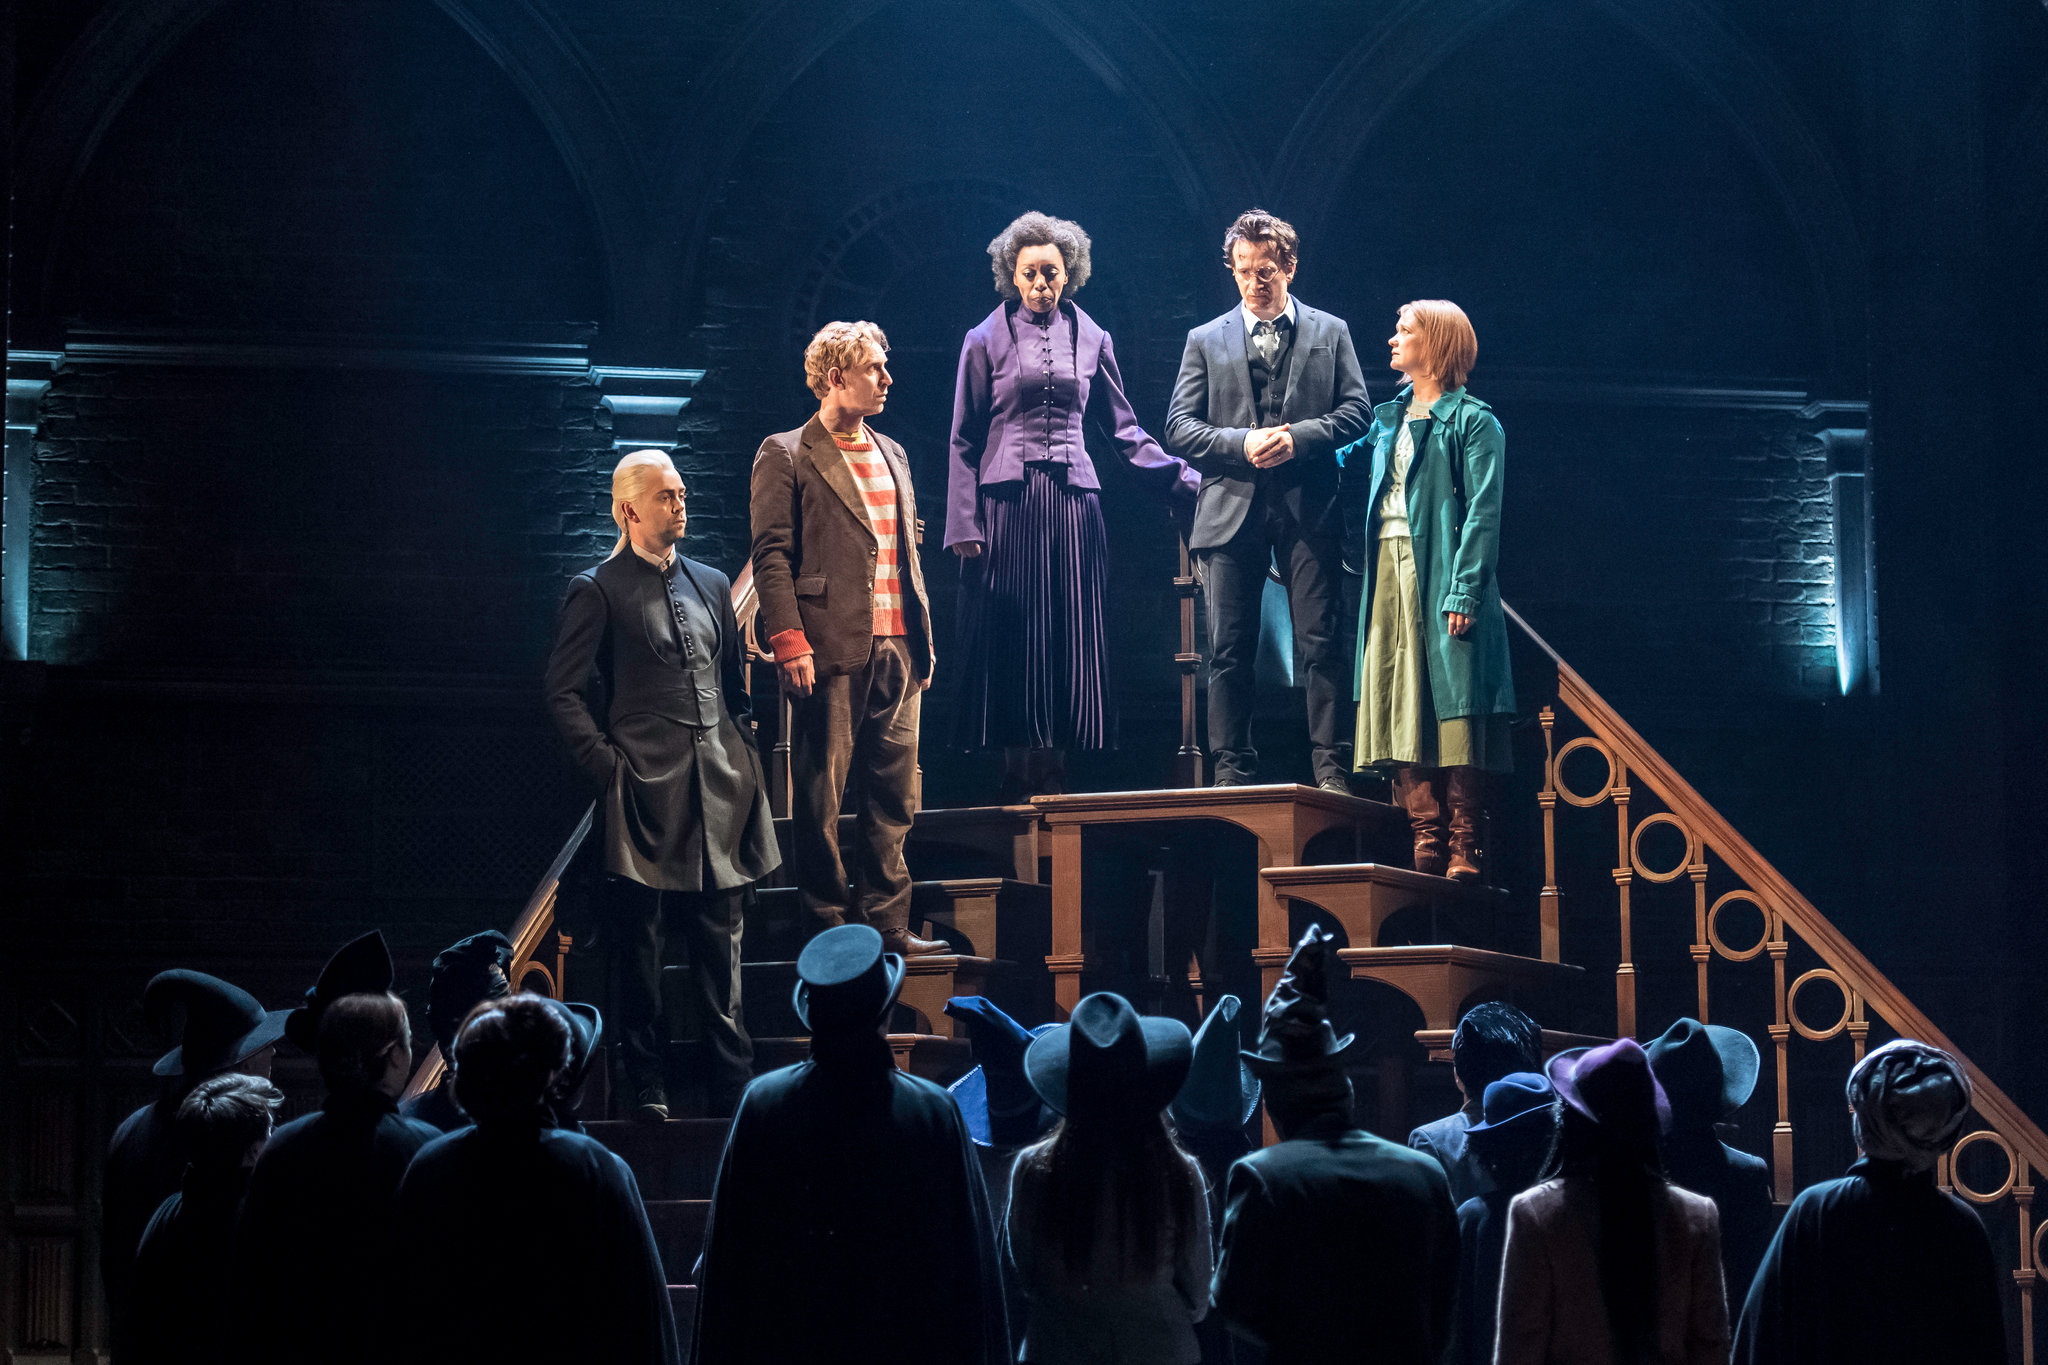 Harry Potter and the Cursed Child - Part 1 & 2 (5/21 7:30PM & 5/22 7:30PM) at Lyric Theatre